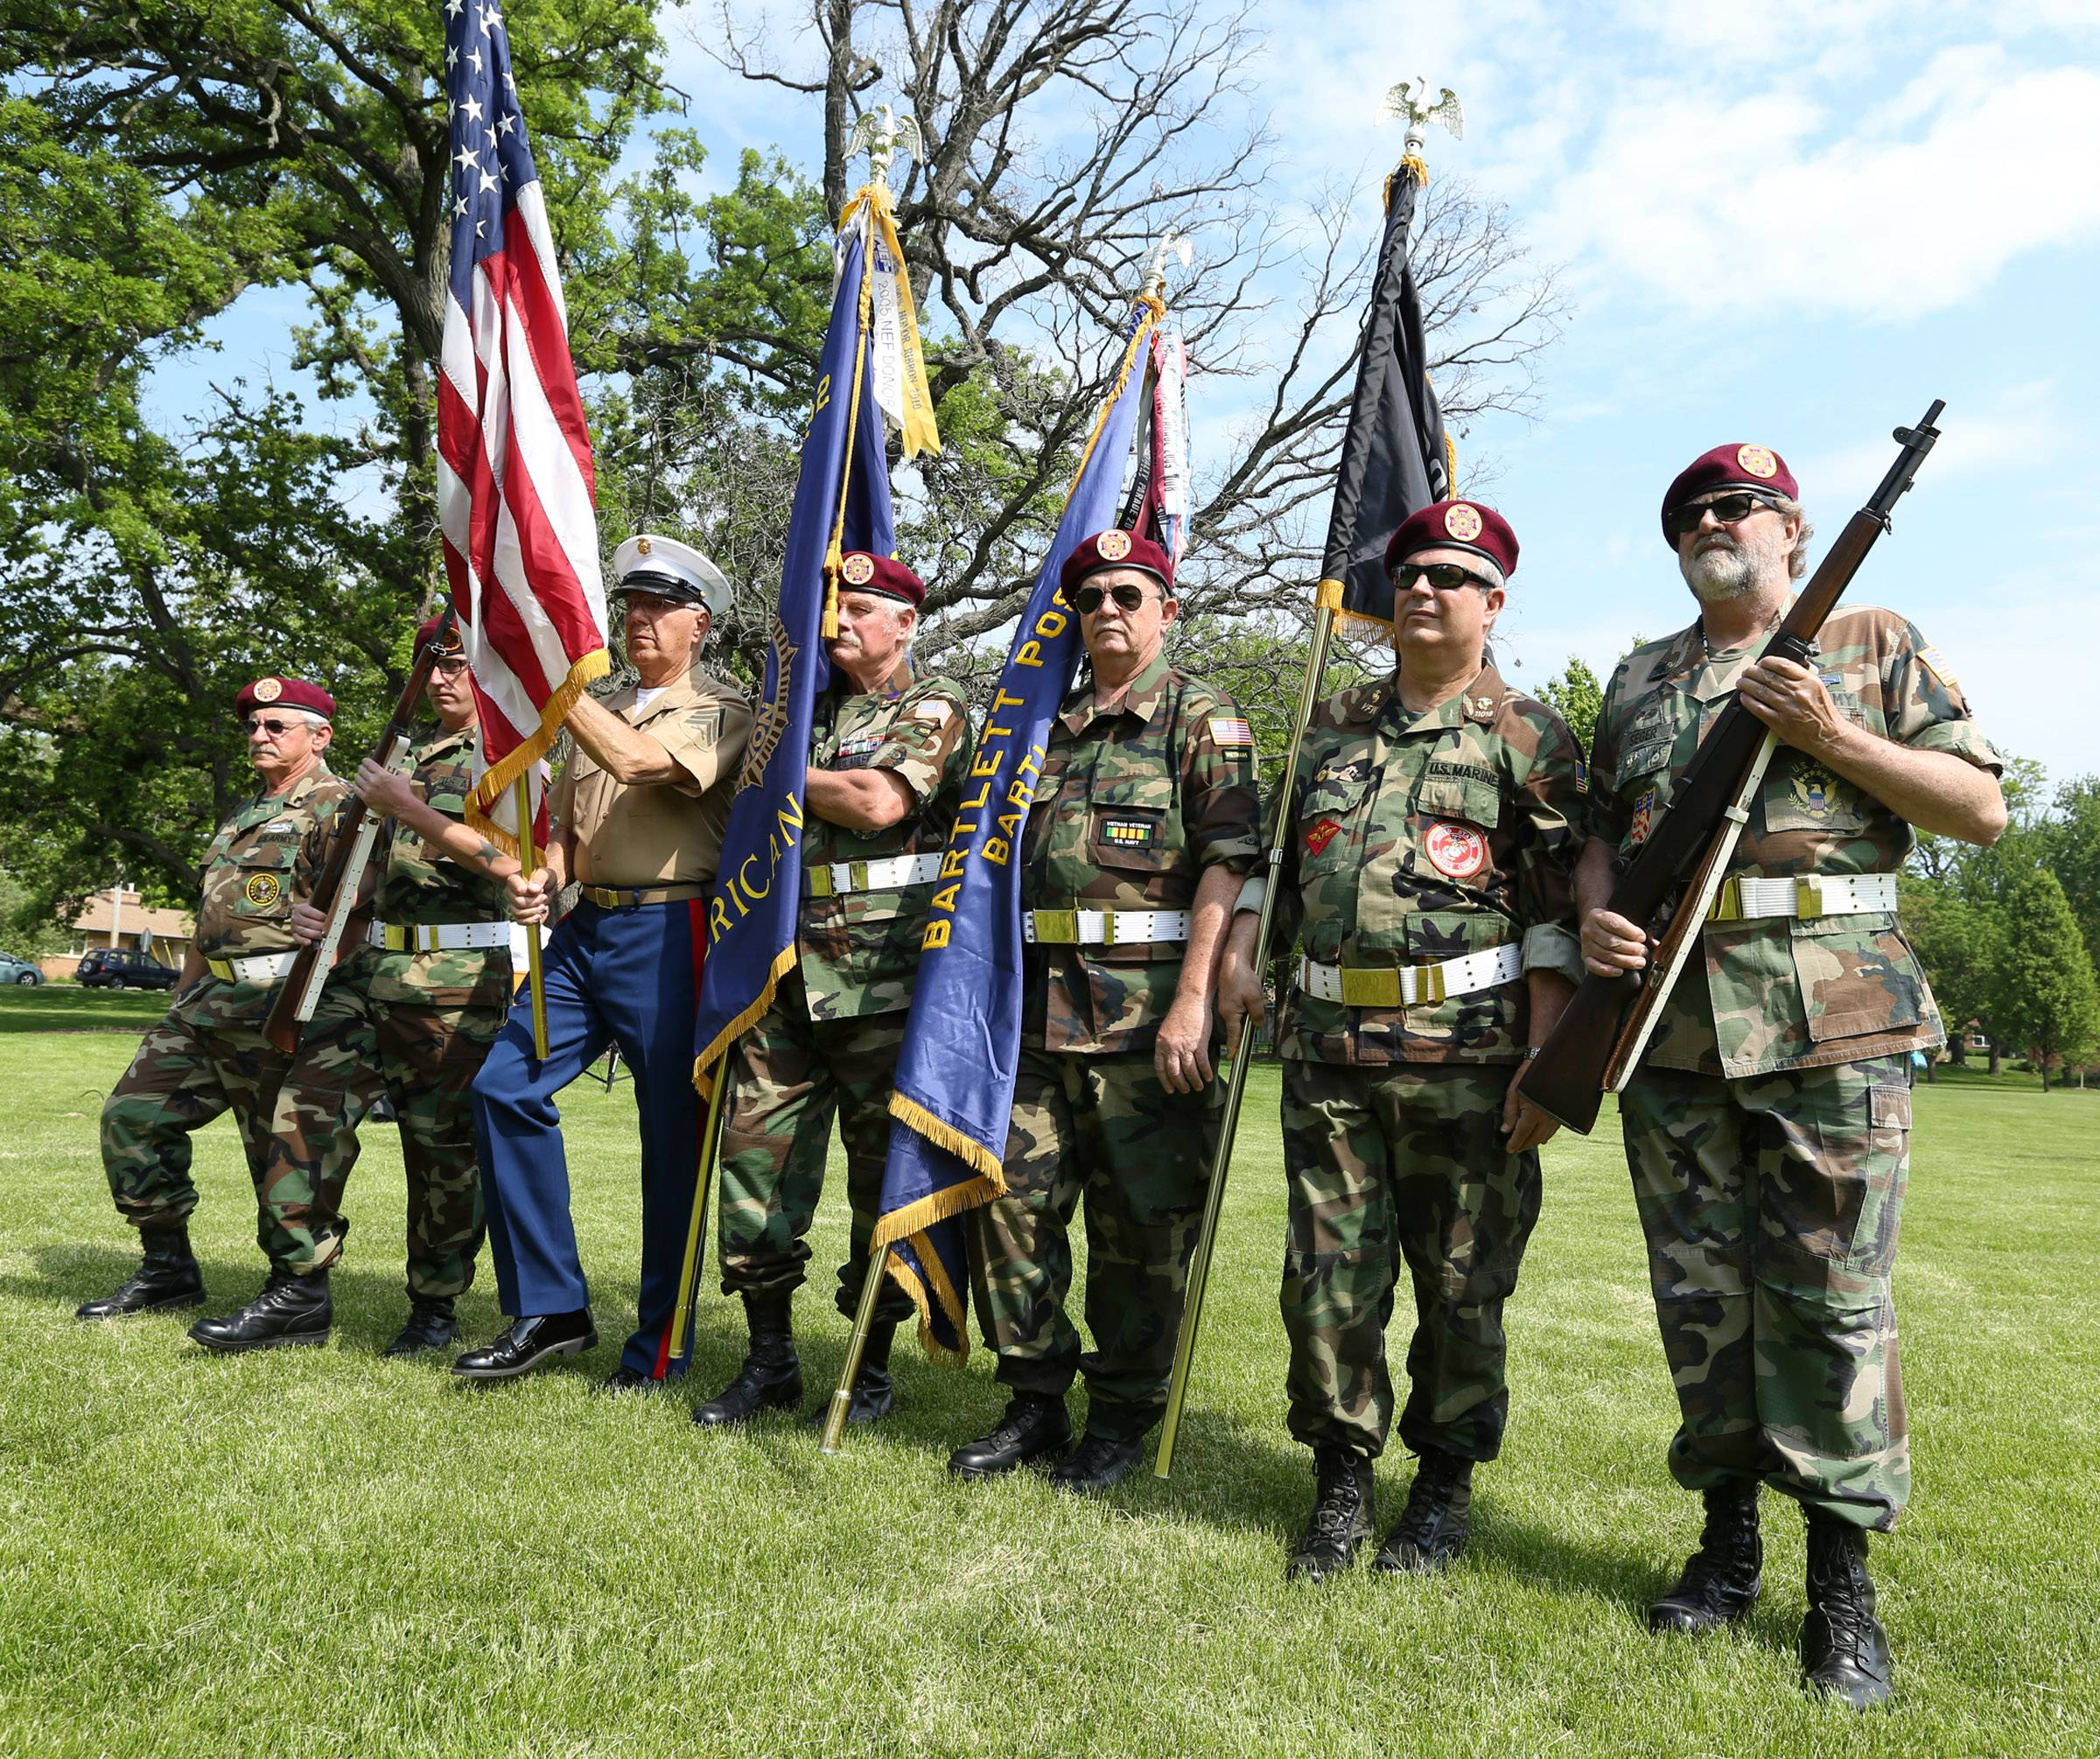 The color guard marches into Bartlett Park for a flag retirement ceremony held by Bartlett VFW Post 11018 and American Legion Post 1212 on Memorial Day.